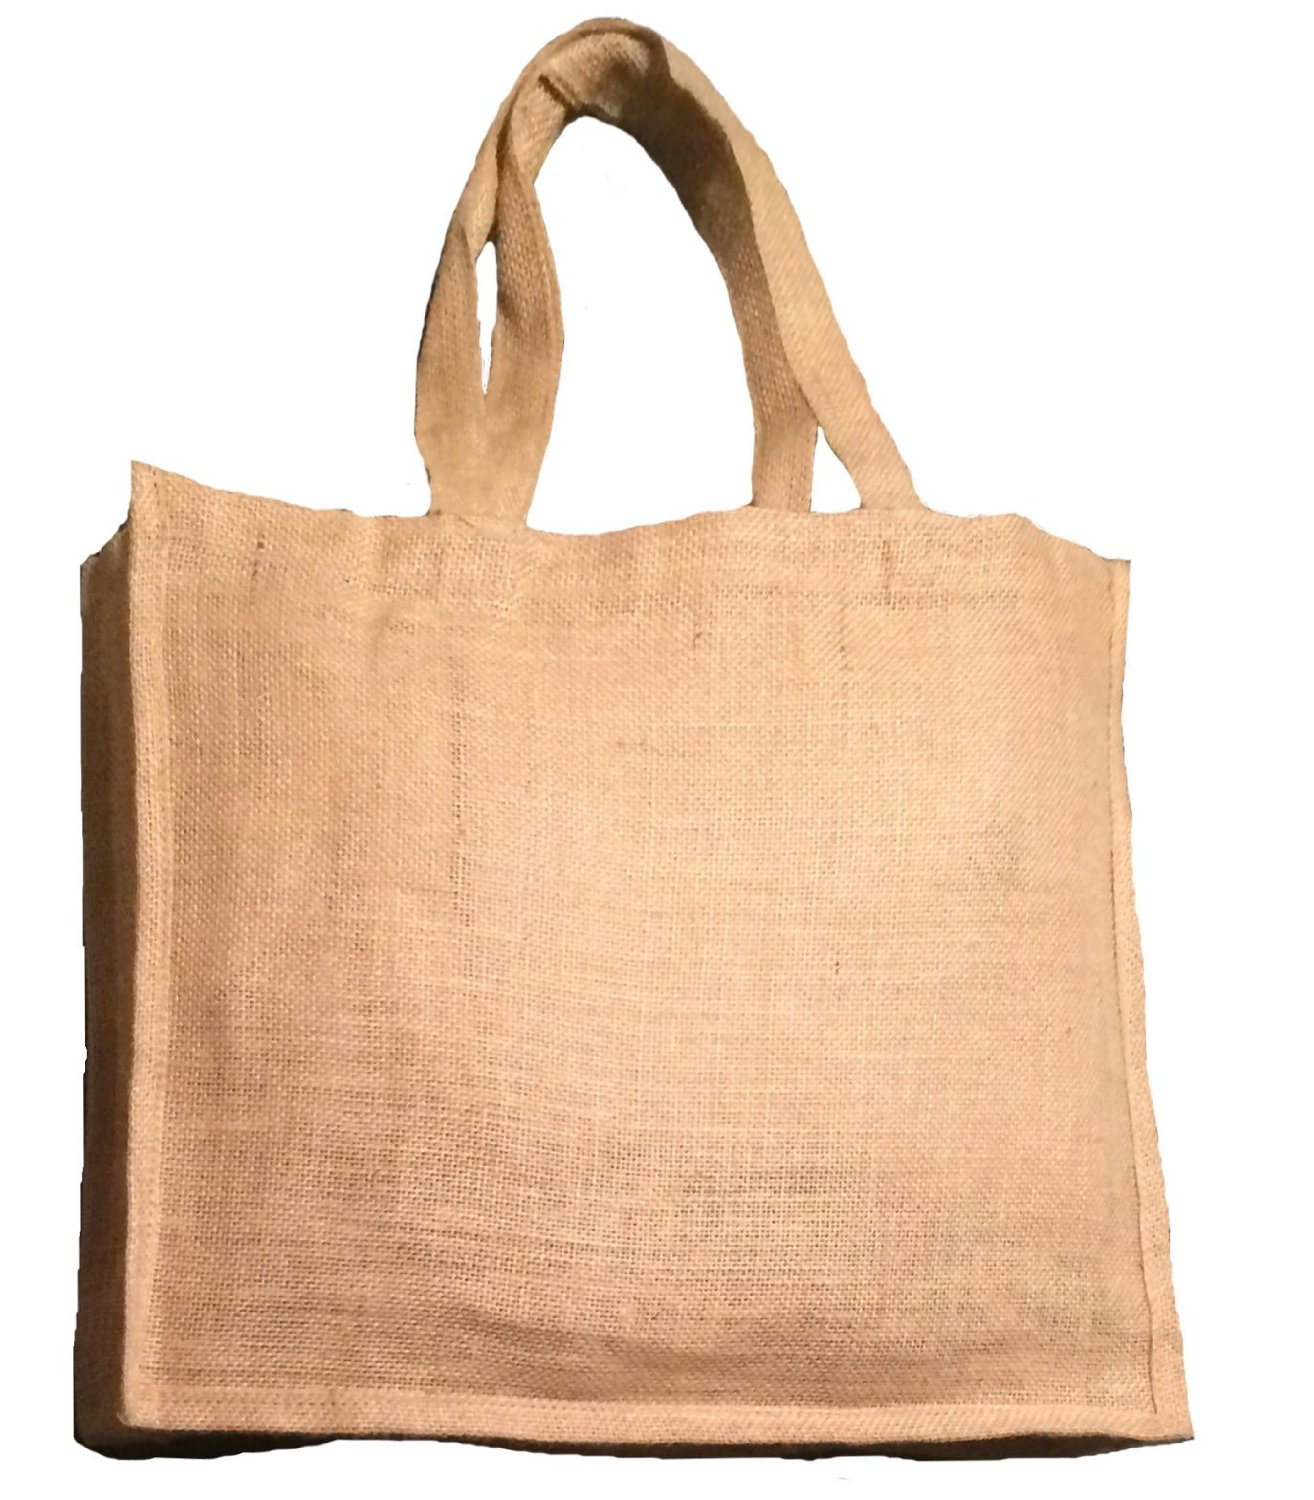 309517590 Get Quotations · Pack of 6 Natural Color Jute Burlap Shopping tote bag with  Jute handles unlaminated from inside